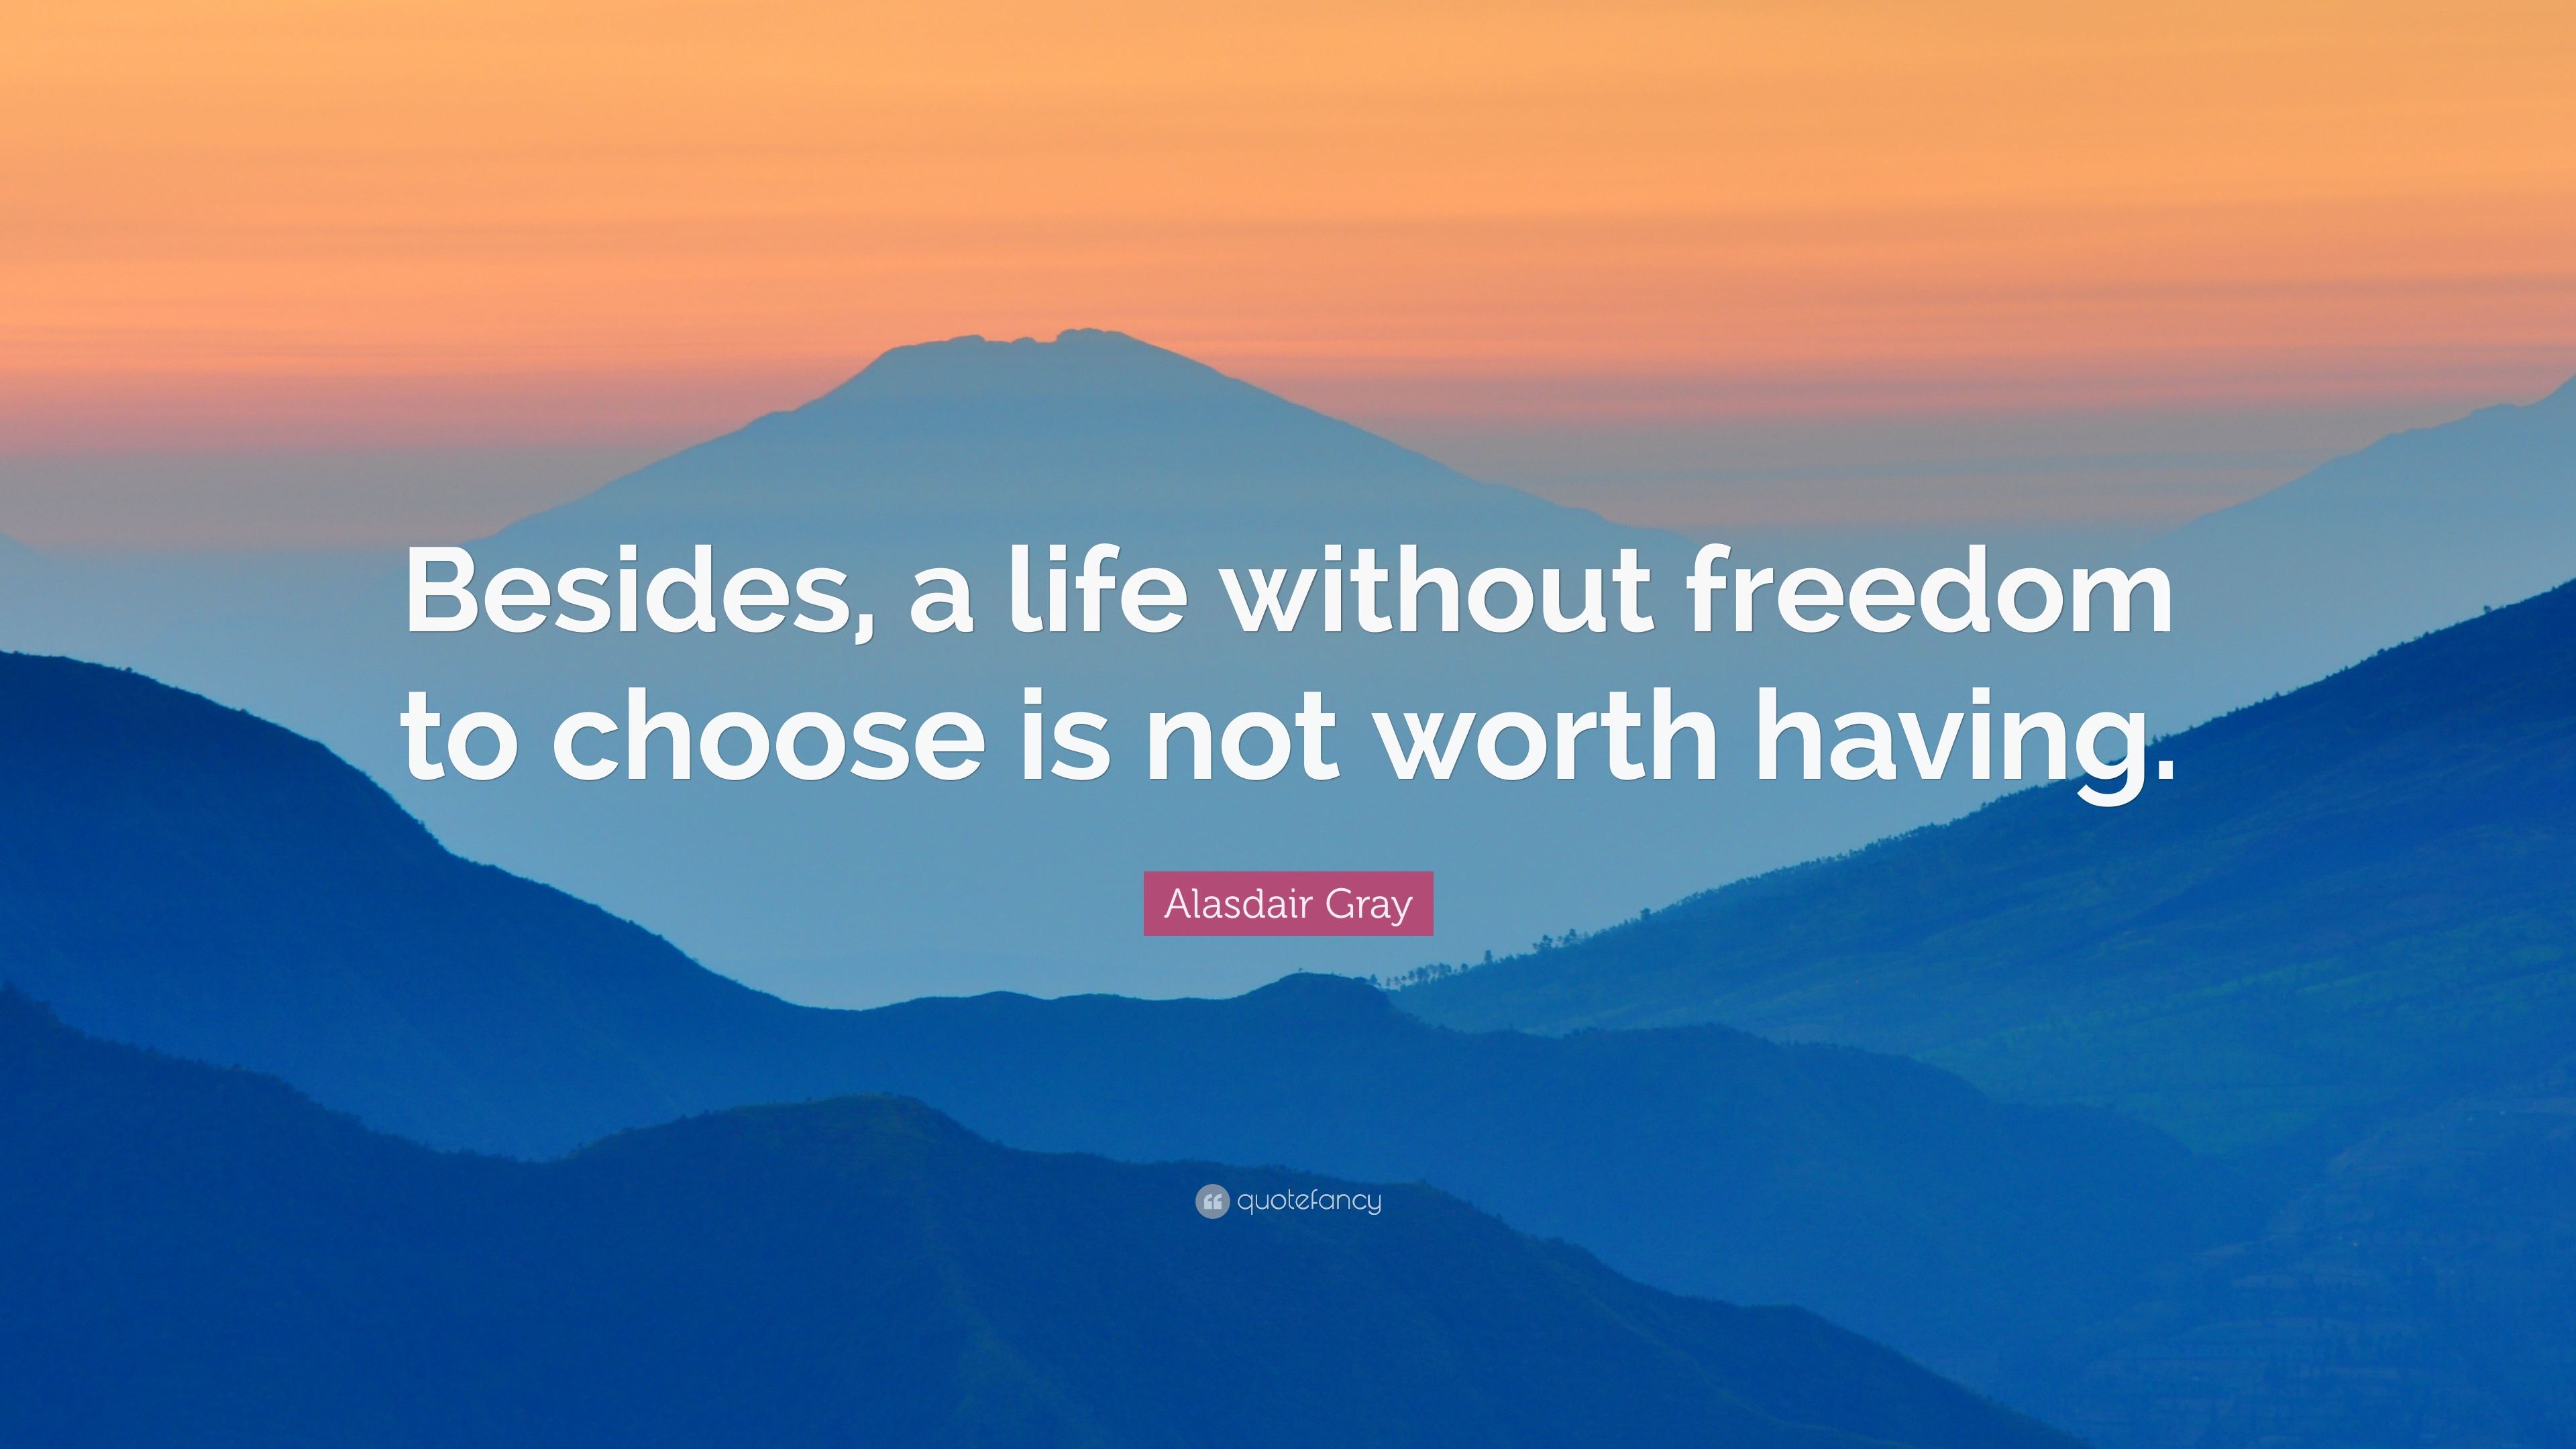 Life Without Freedom Quotes: Alasdair Gray Quotes (14 Wallpapers)